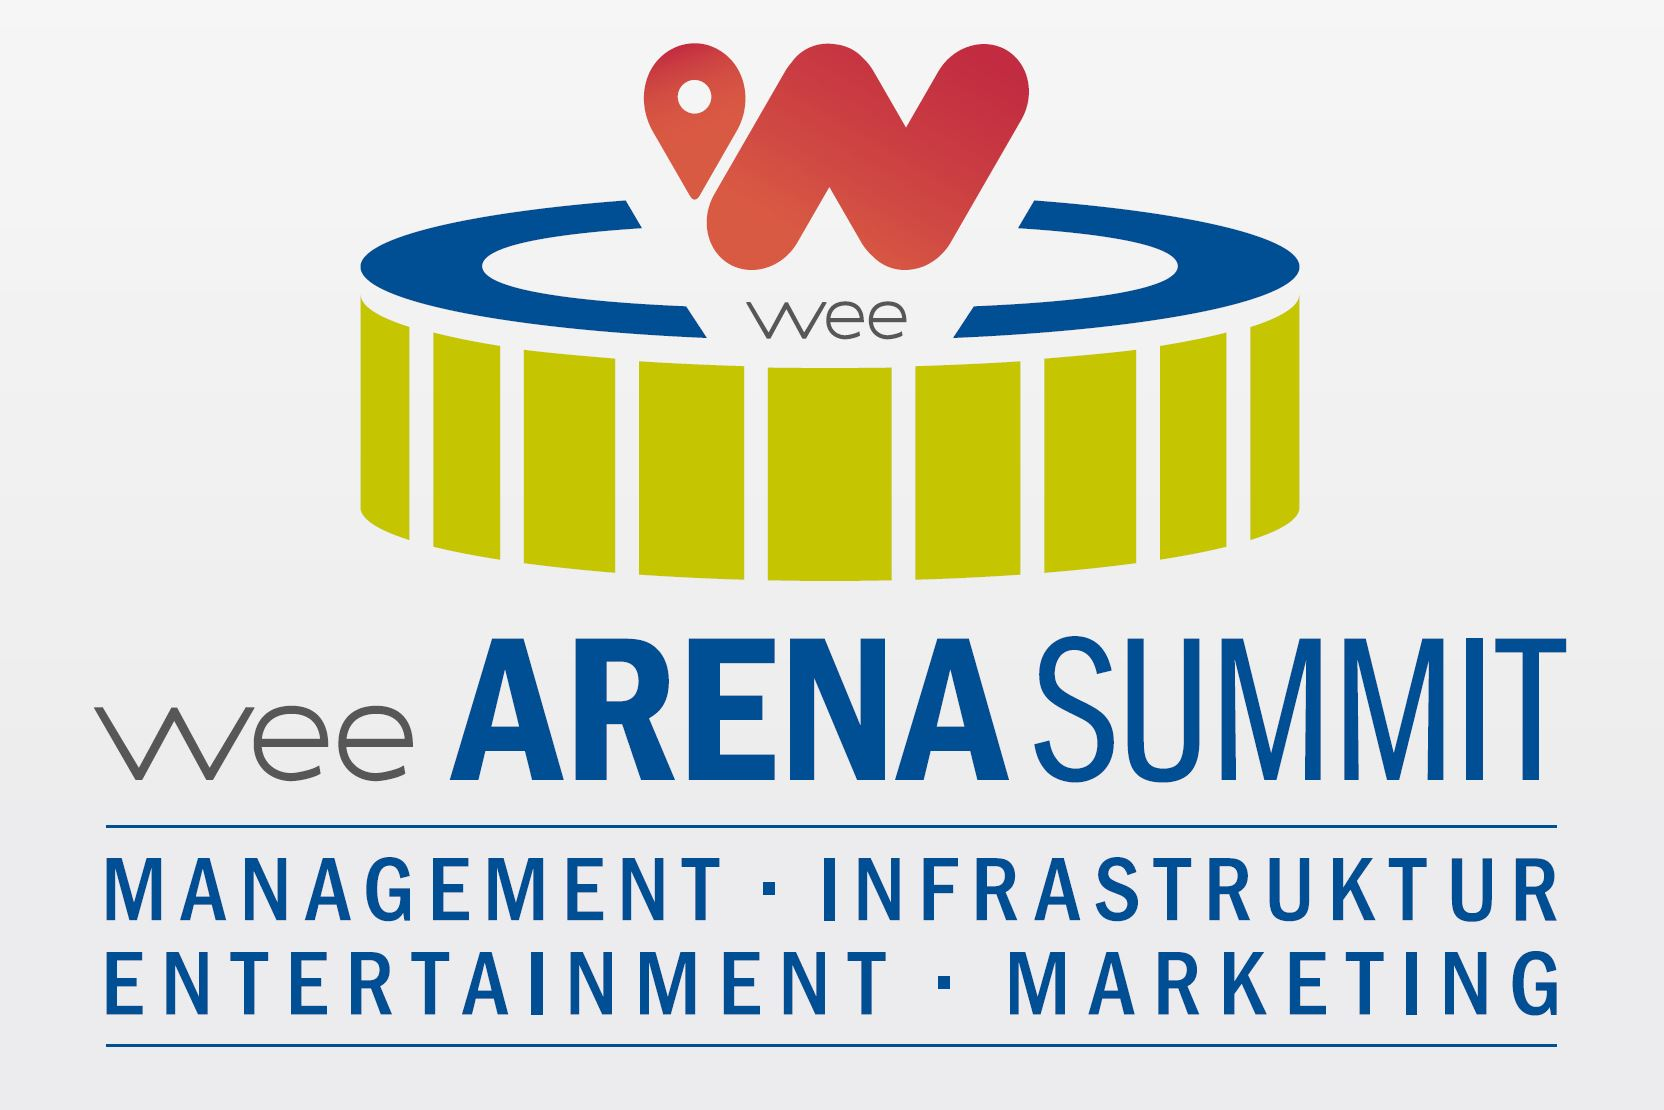 TW AUDiO offizieller Partner des Arena Summit